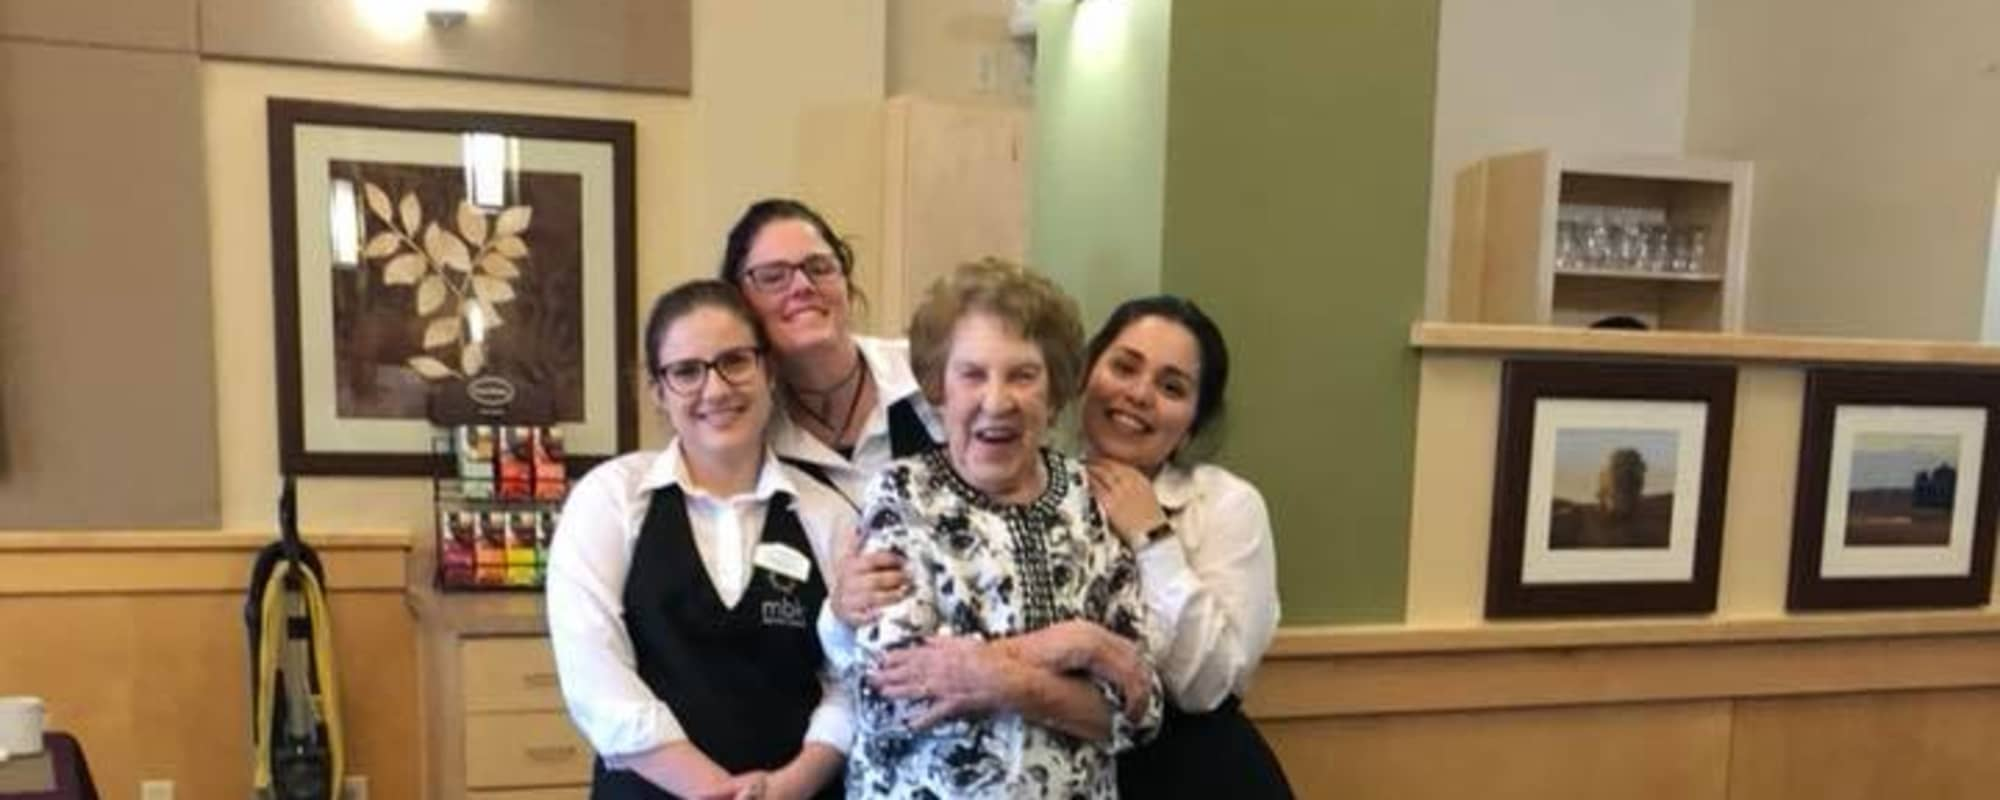 Waitstaff hugging happy senior at Island House Assisted Living in Mercer Island, Washington